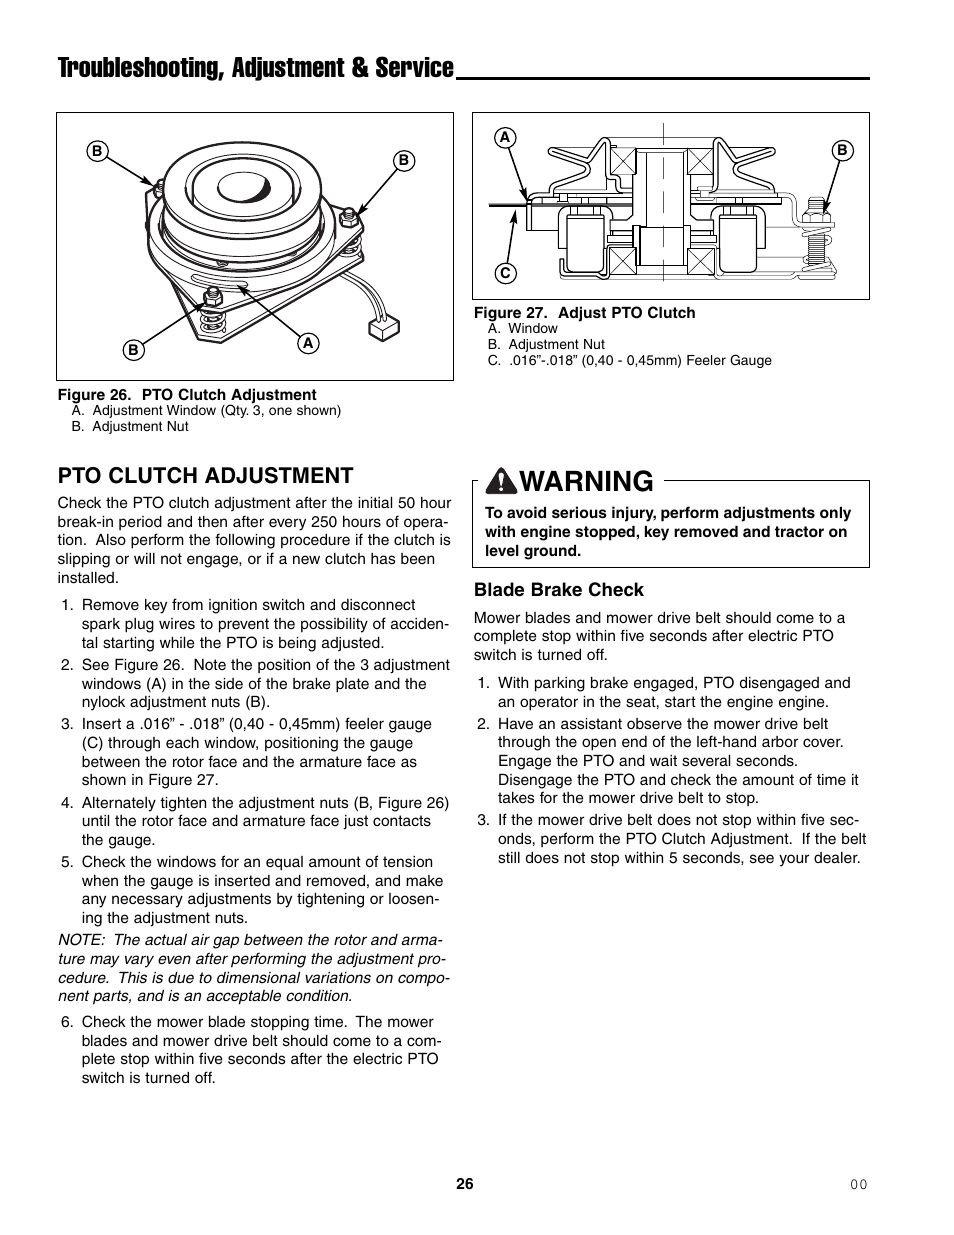 Troubleshooting Adjustment Service Warning Pto Clutch Ferris Mower Seat Switch Wiring Diagram Industries 1000zkav21 48ce User Manual Page 28 42